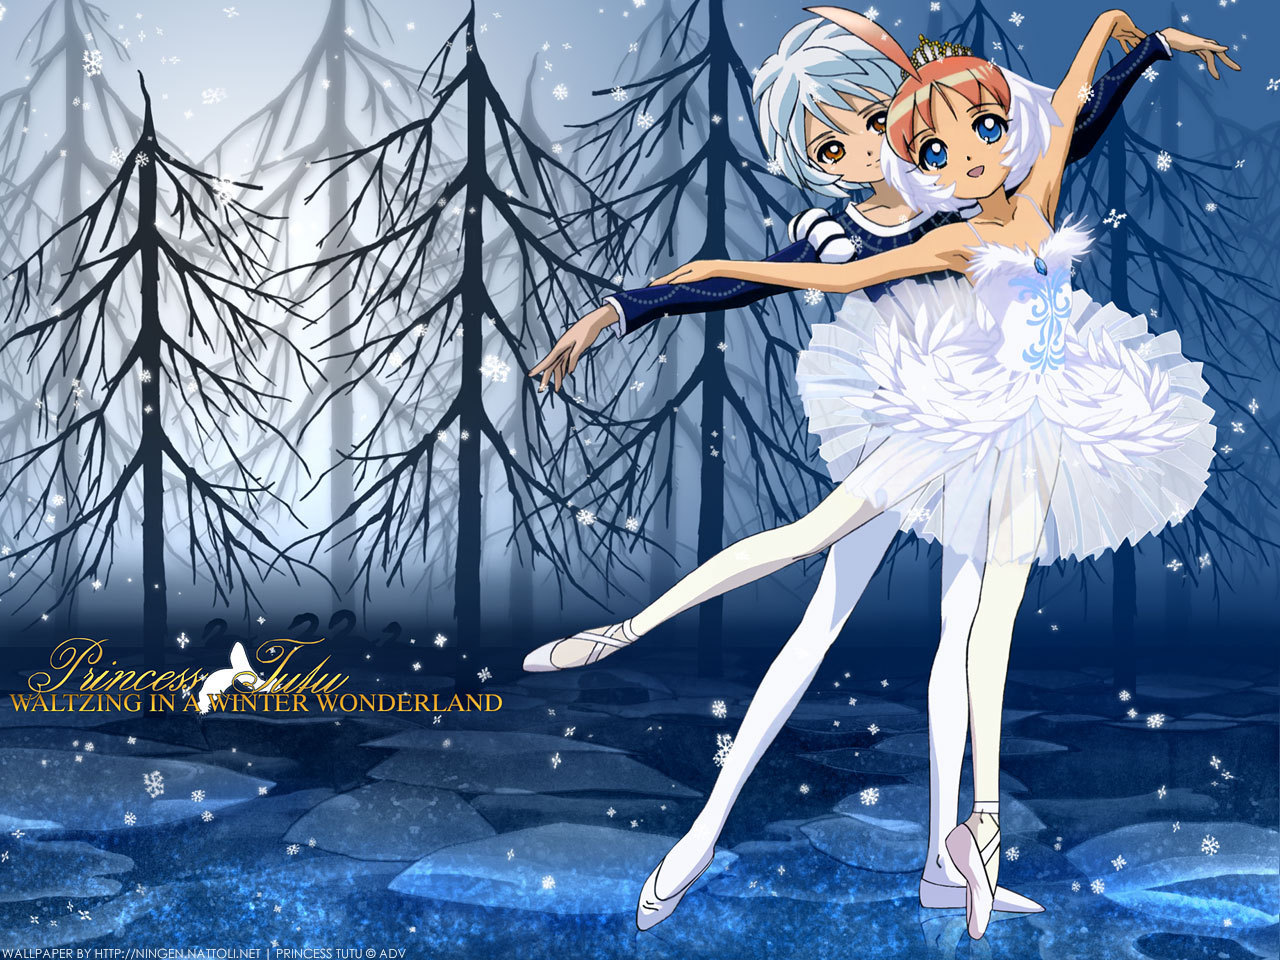 Princess Tutu in Wonderland